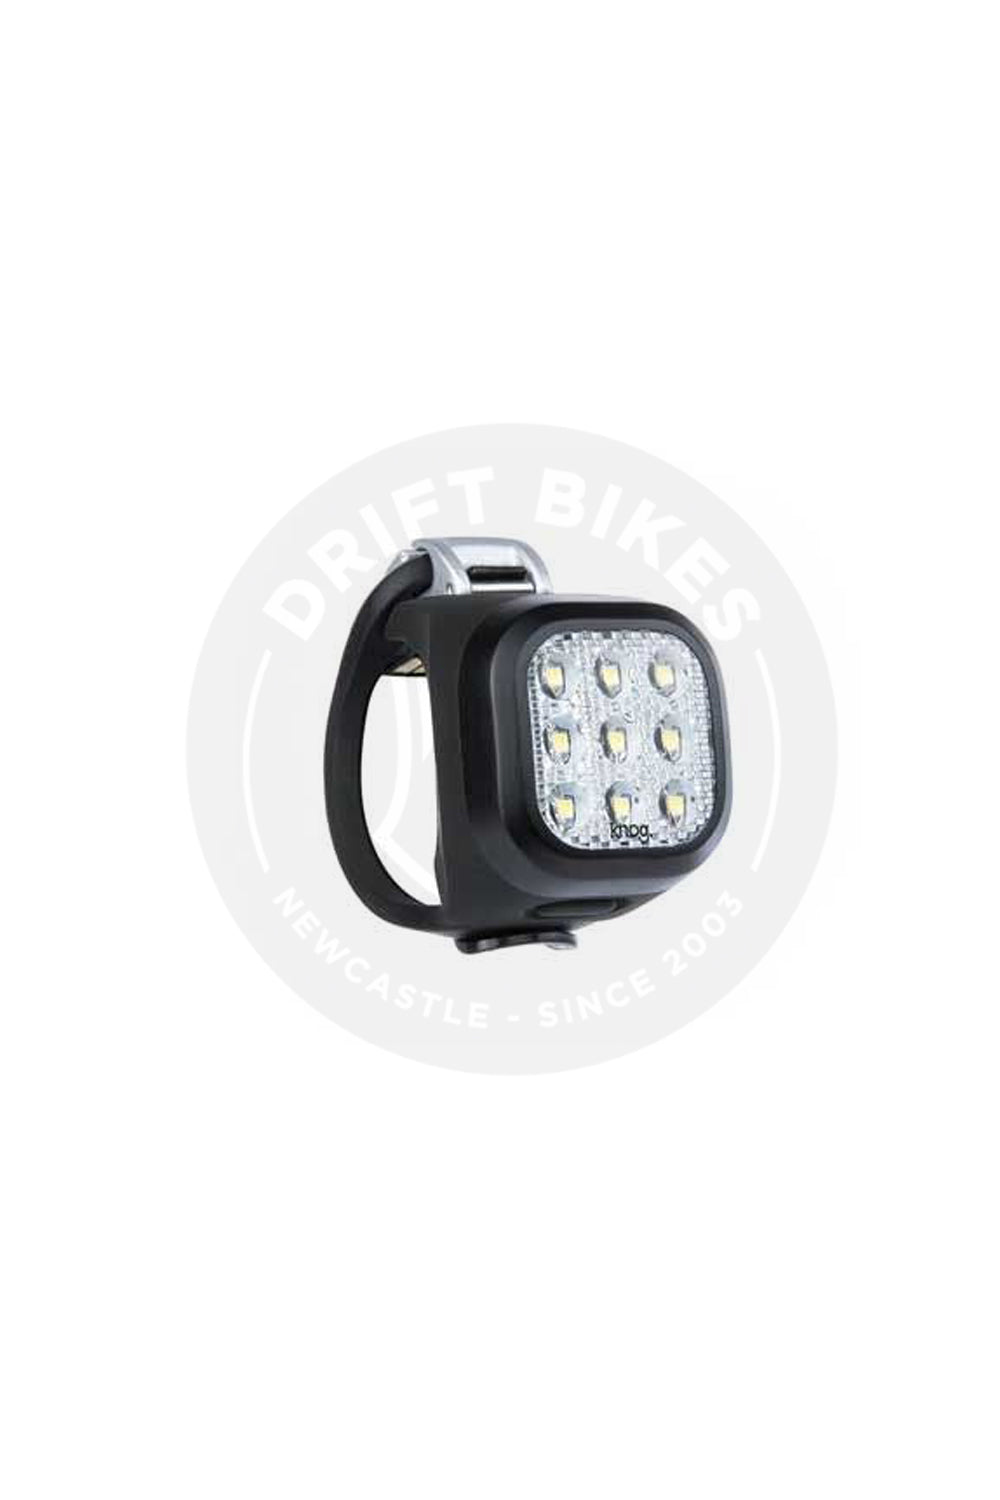 Light Knog Blinder Mini Niner Black Front